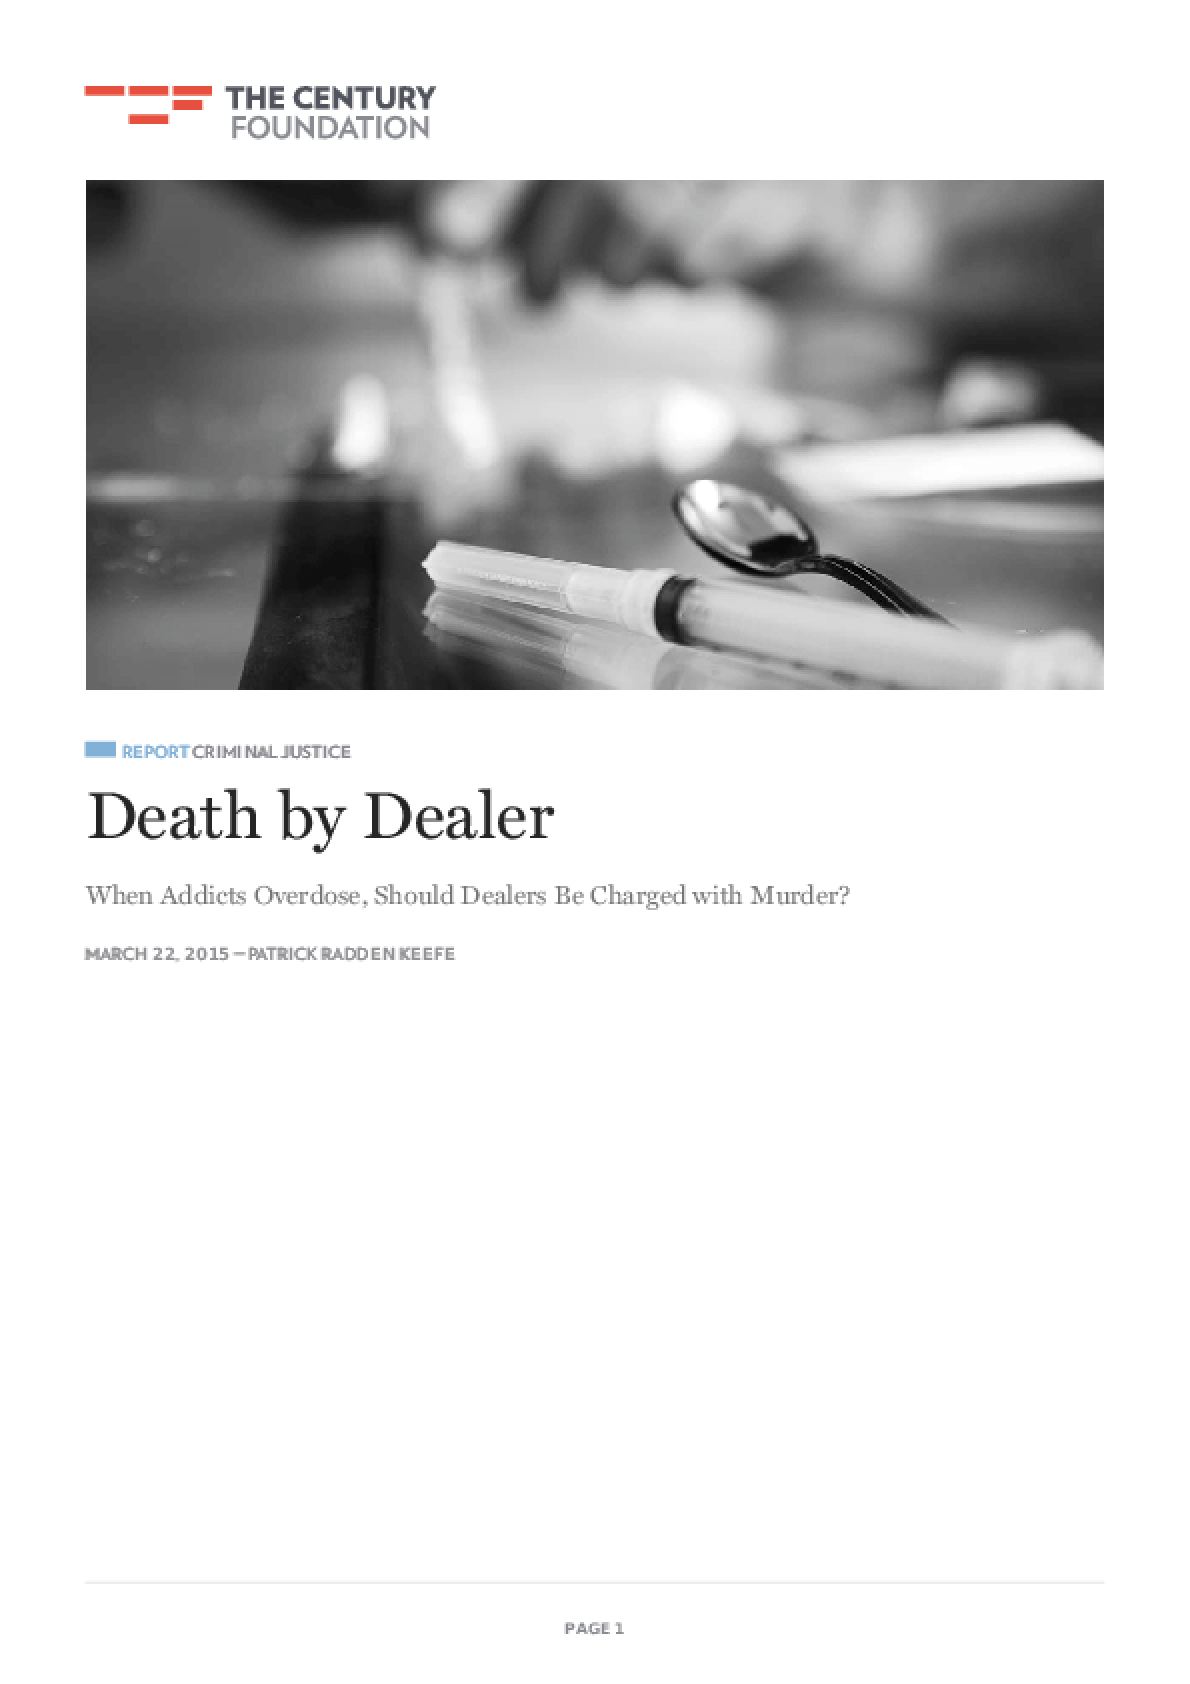 Death by Dealer: When Addicts Overdose, Should Dealers Be Charged with Murder?